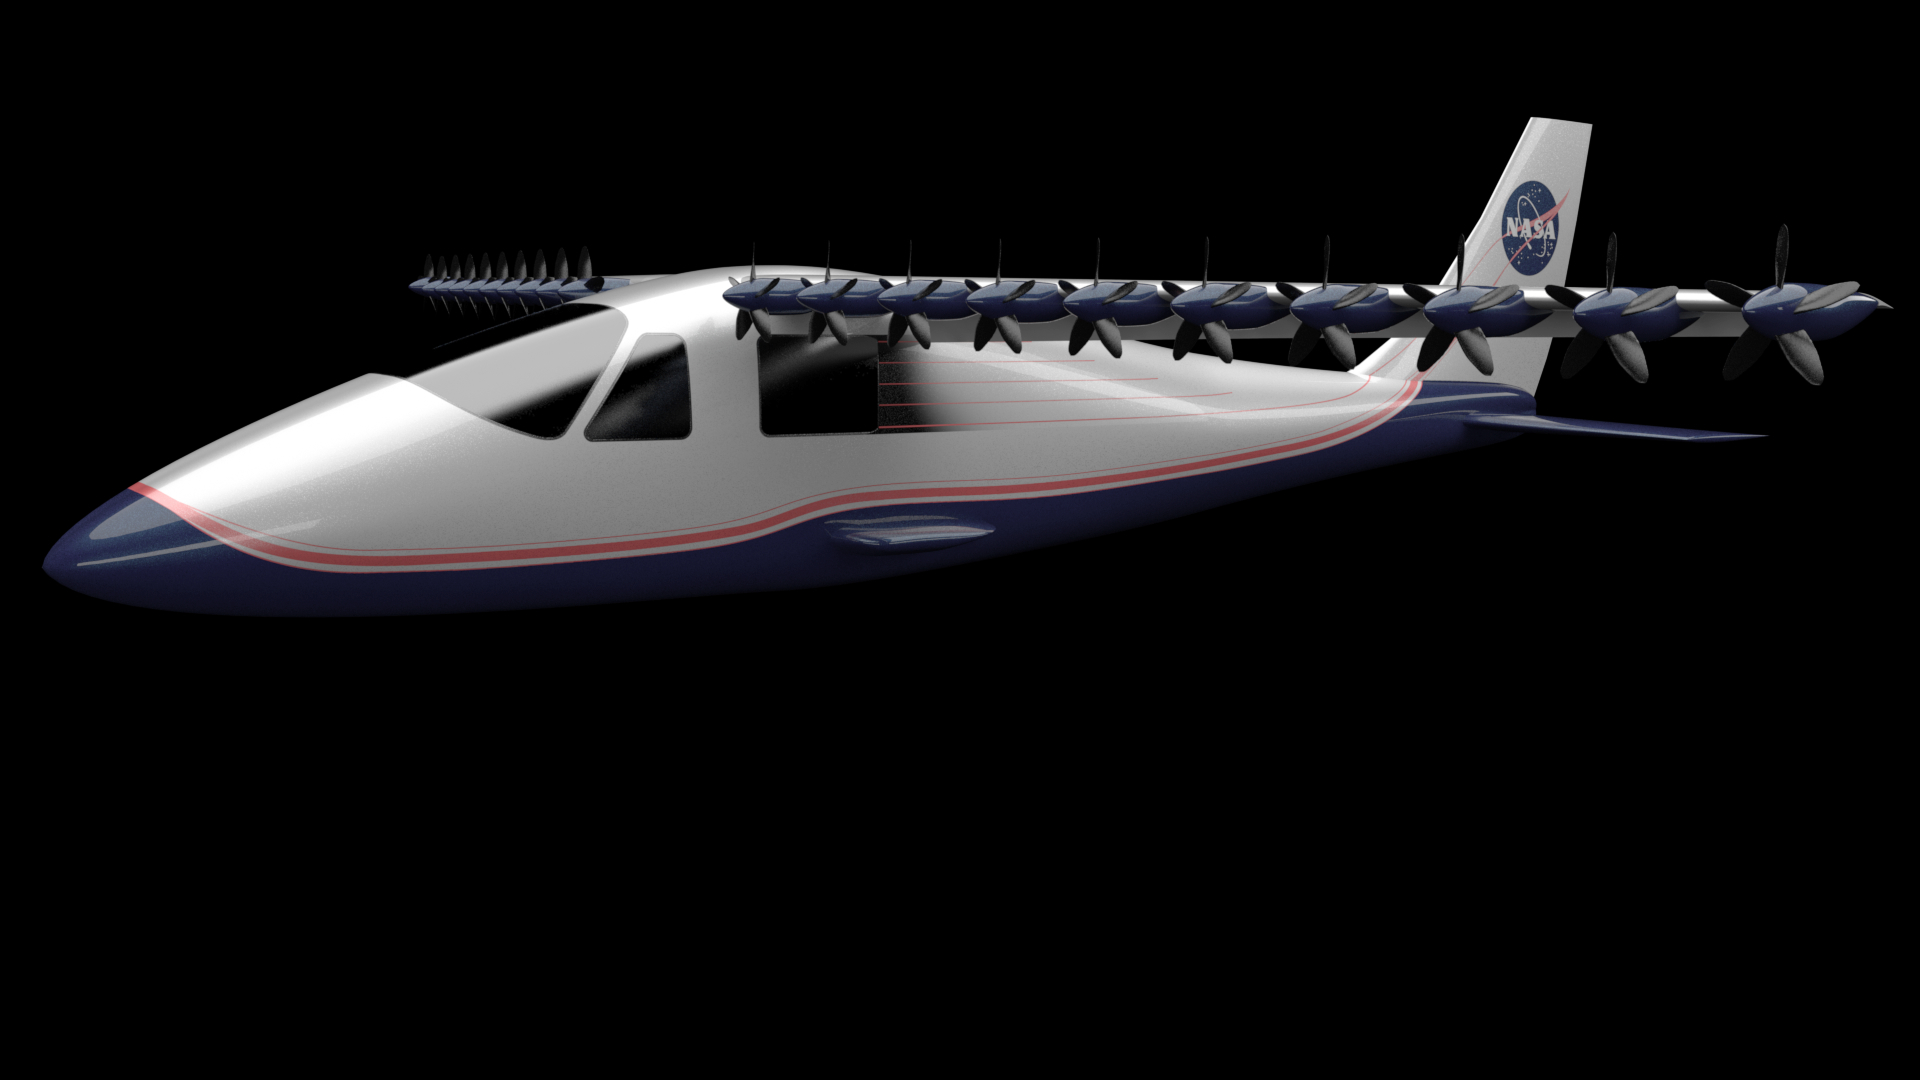 Electric motors with digital control may open new horizons for future aircraft this illustration shows one idea of what the convergent electric propulsion technology x plane demonstrator sciox Choice Image